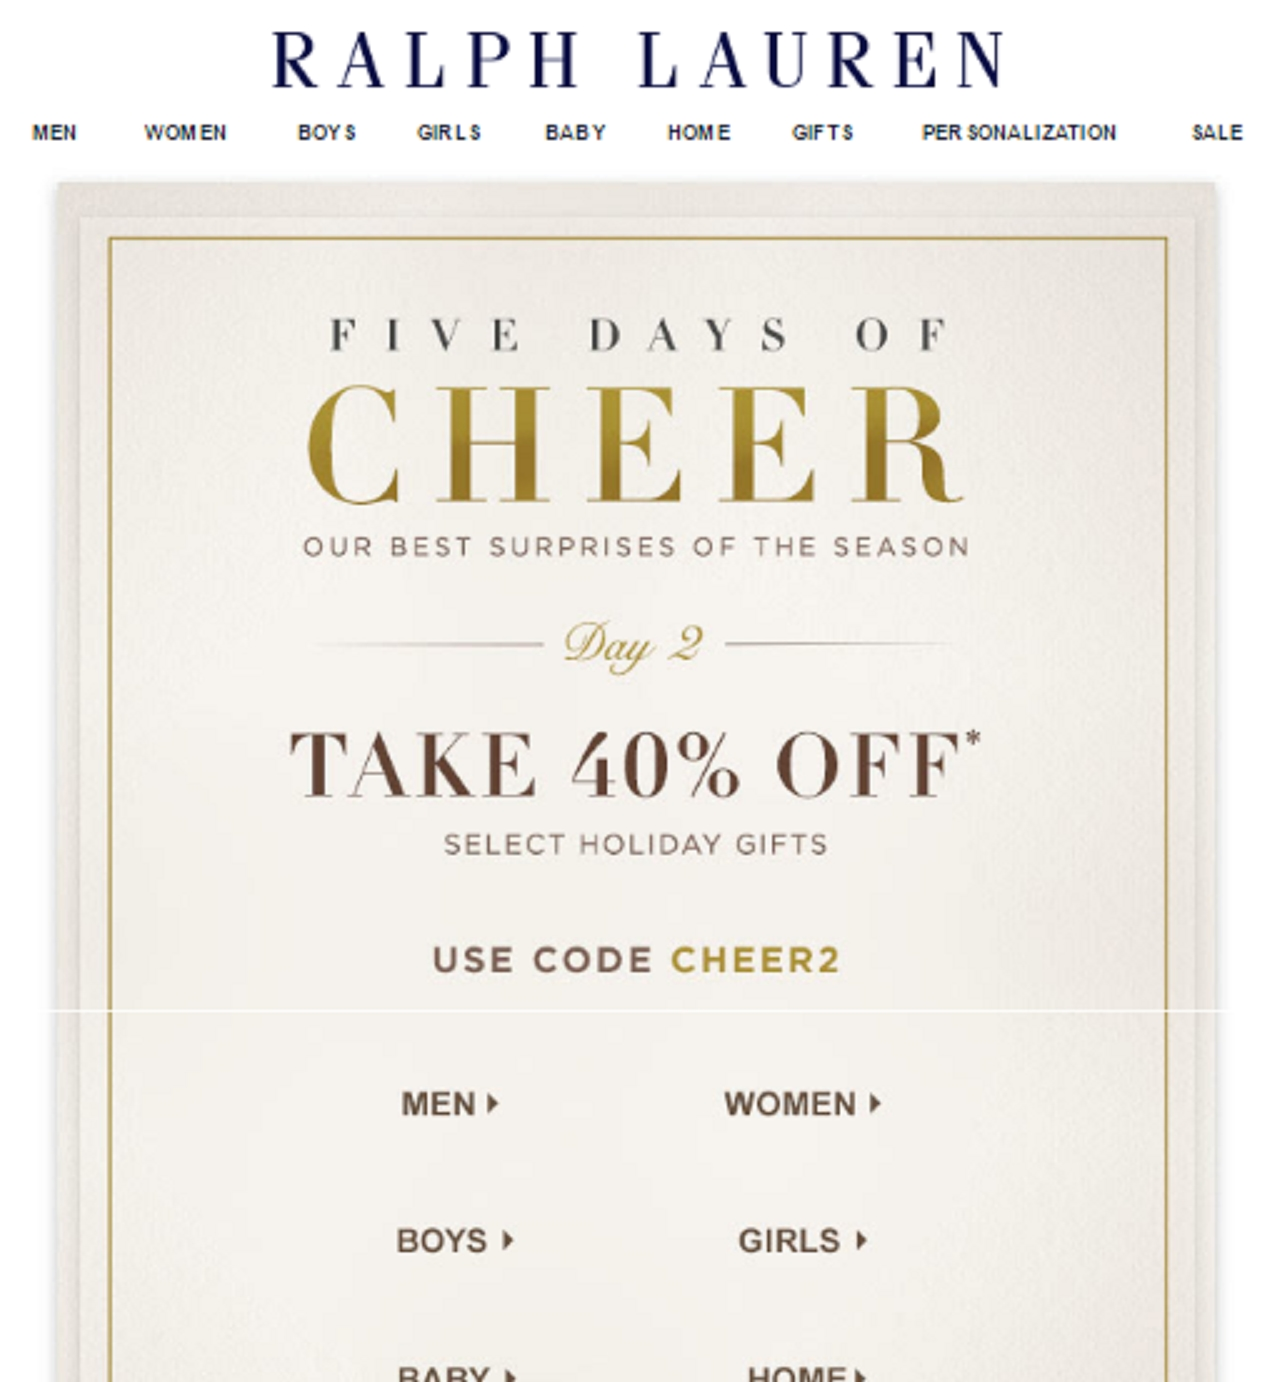 Ralph lauren coupon code 20